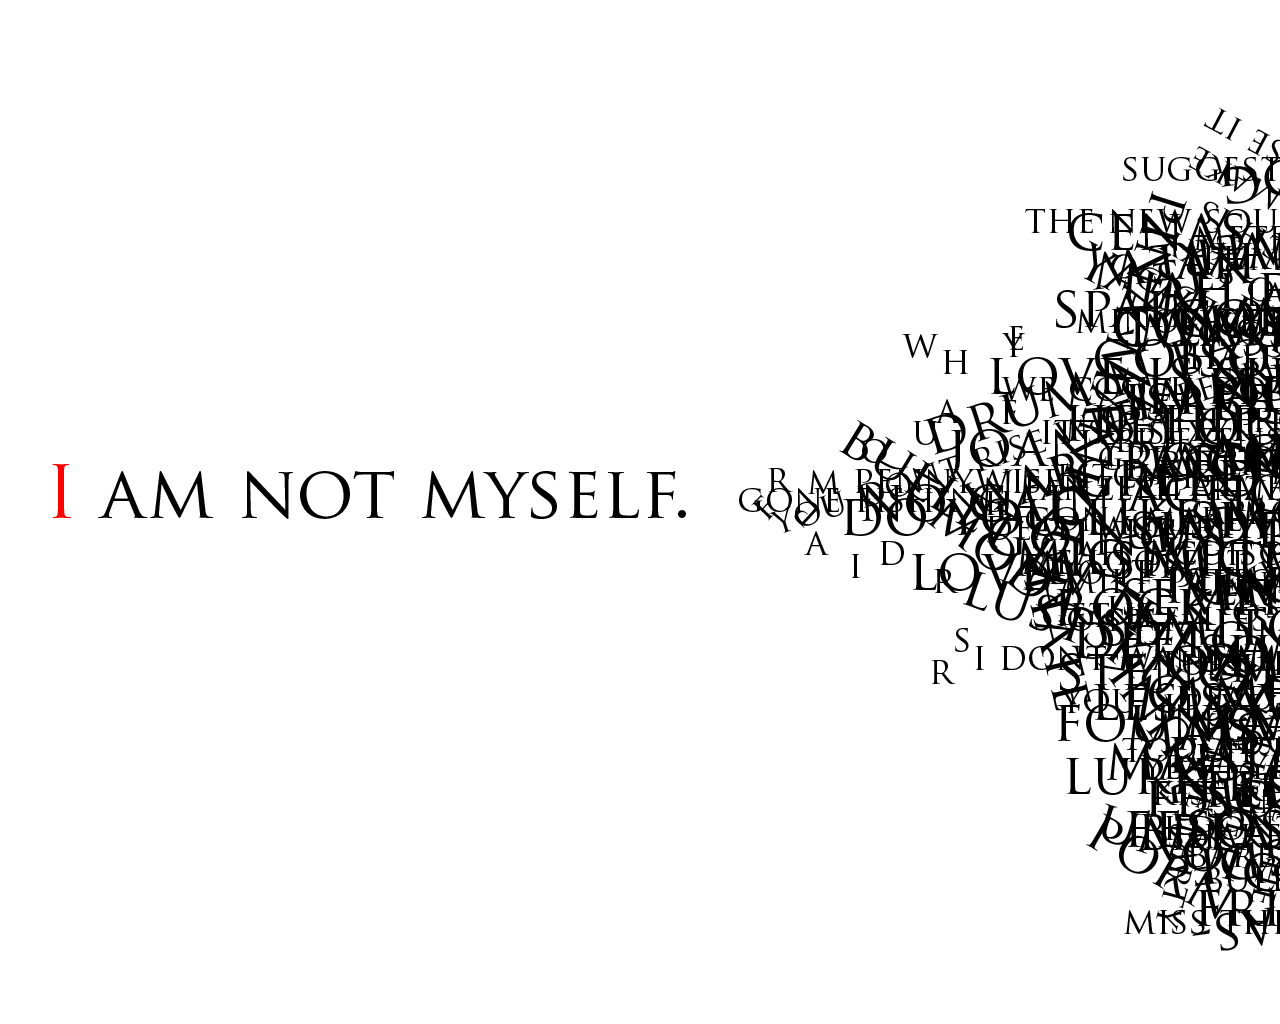 font embedding - I AM NOT MYSELF